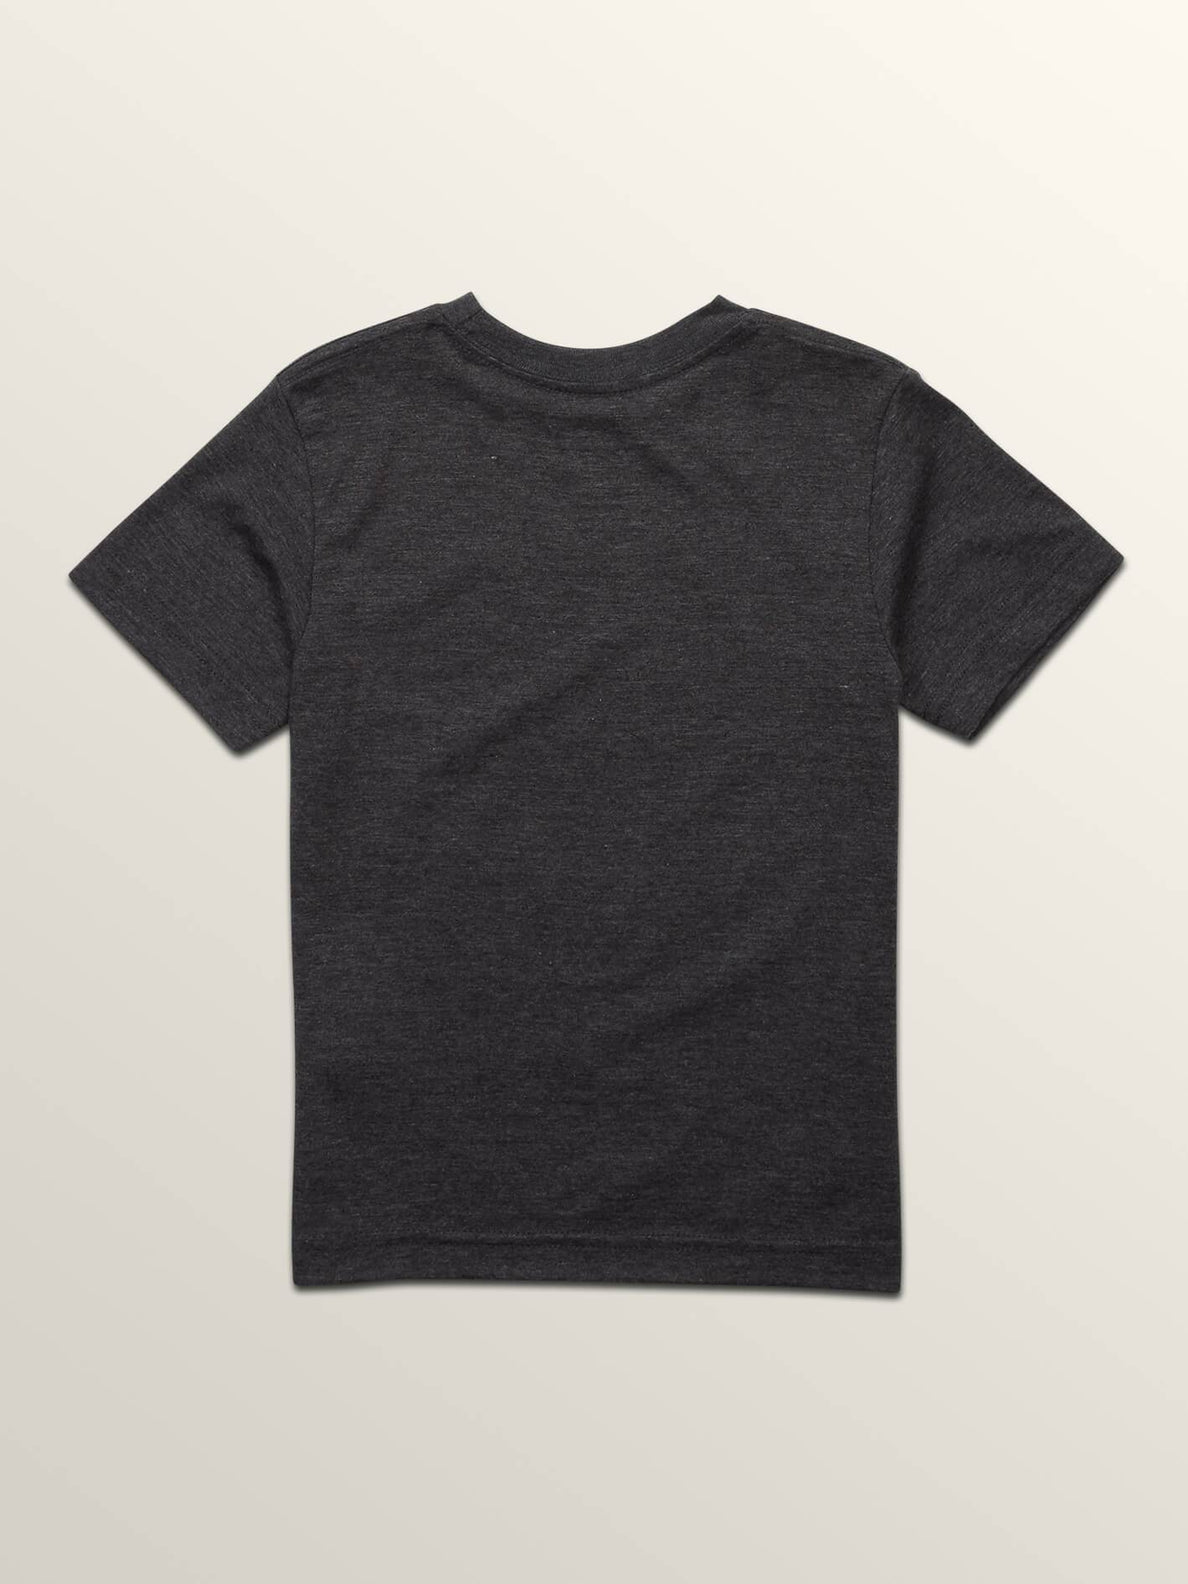 Little Boys Severed Short Sleeve Tee In Heather Black, Back View